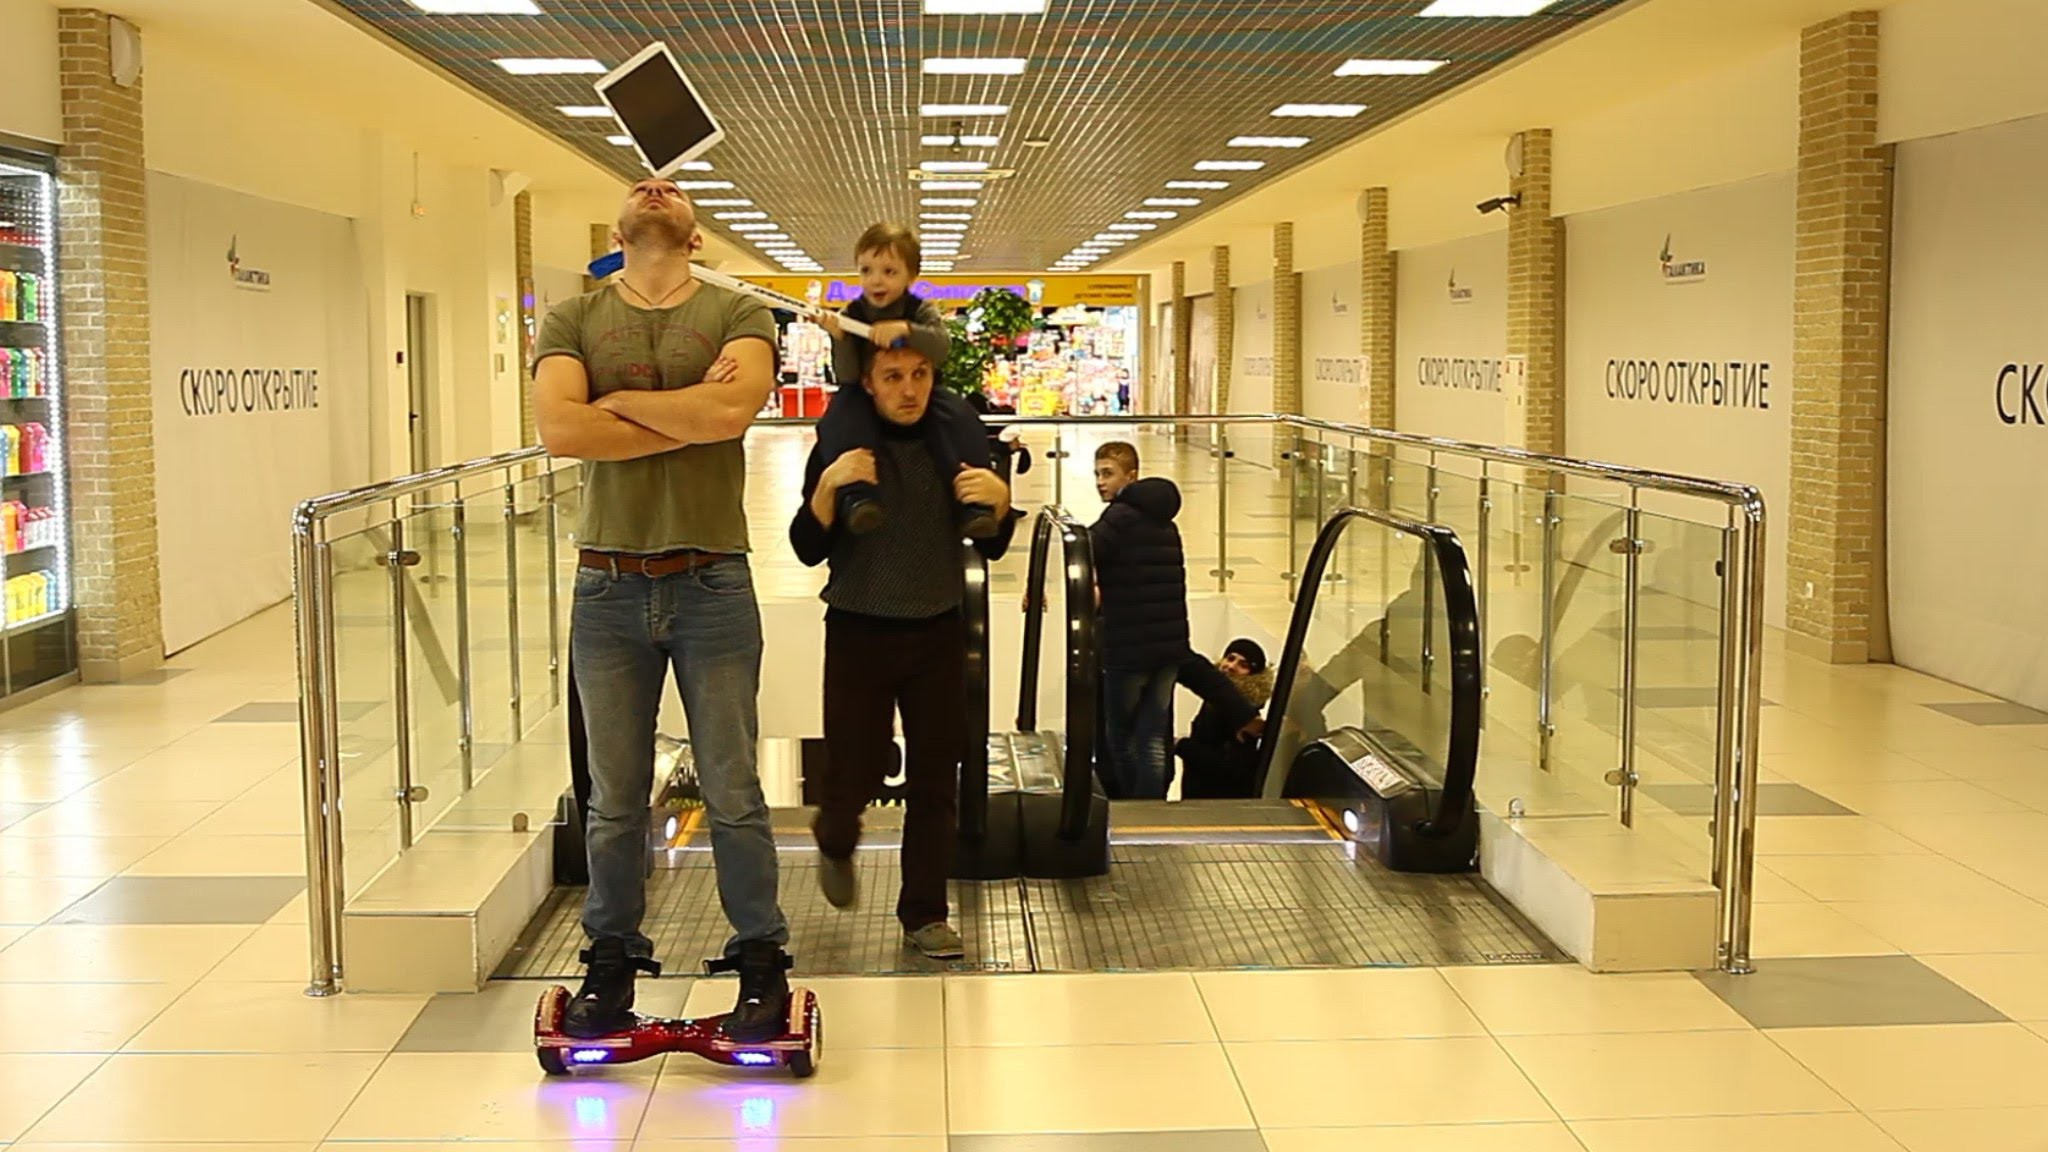 Мальчик разбил iPad. Holding the iPad's the balance, he rides a Hoverboard.